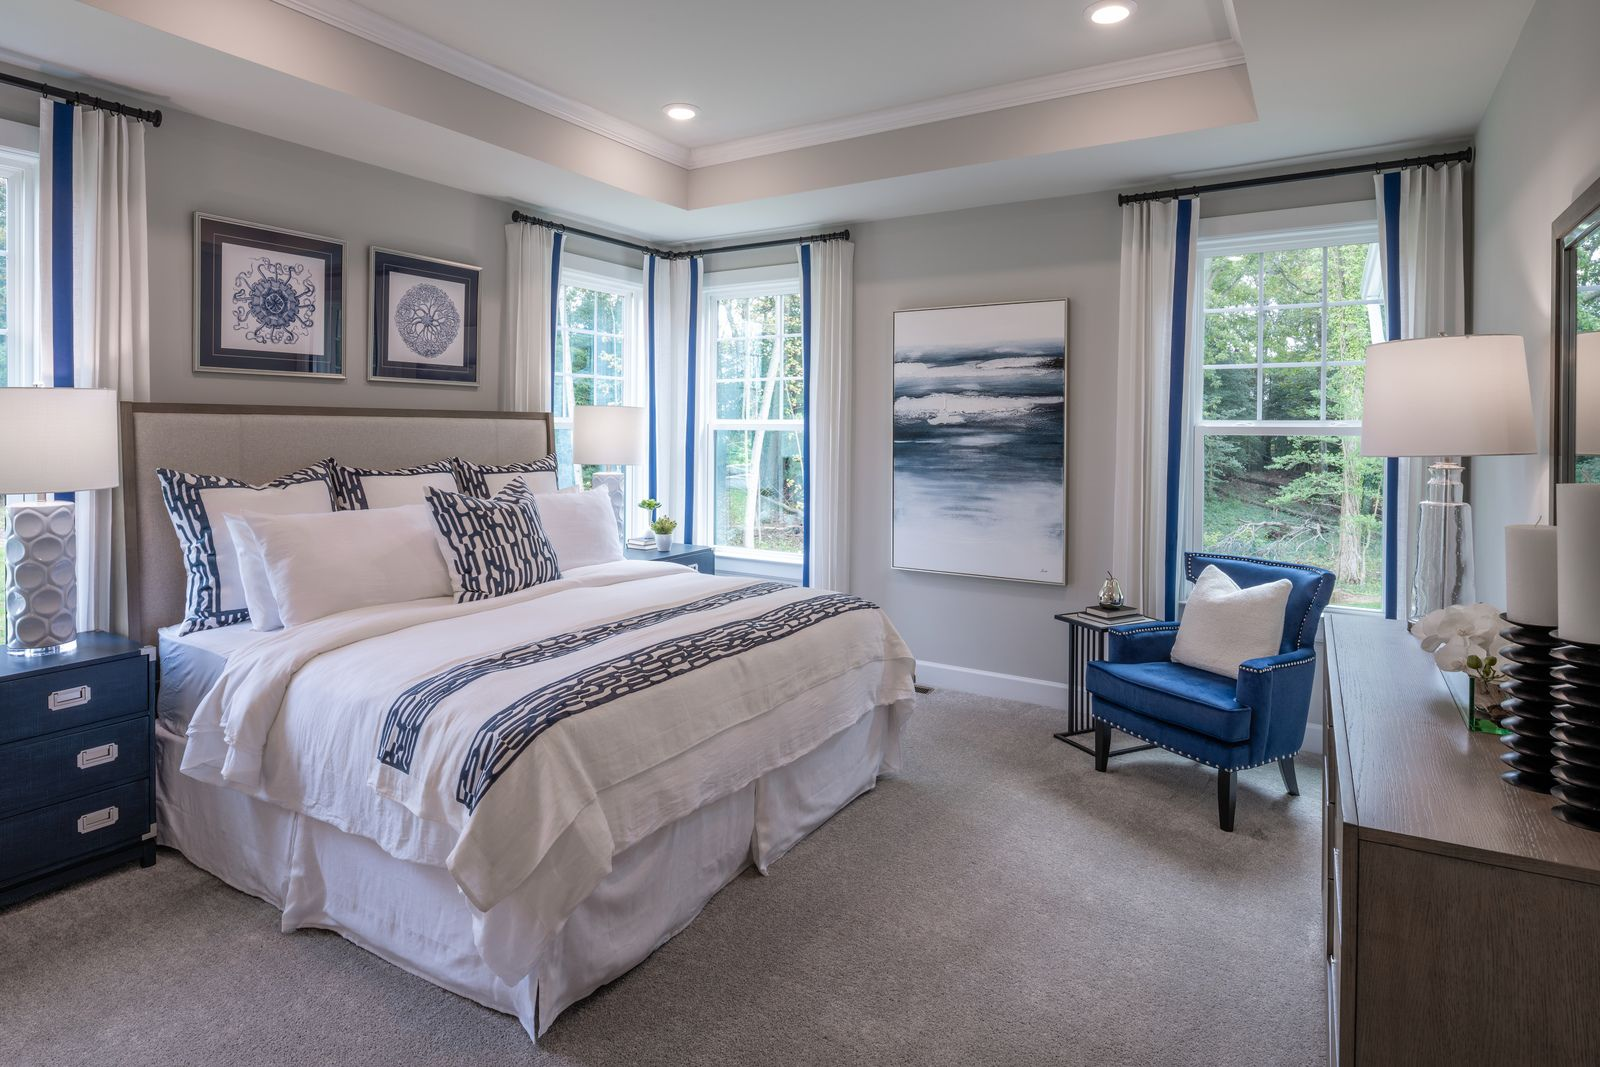 Bedroom featured in the Fairhaven By NVHomes in Sussex, DE